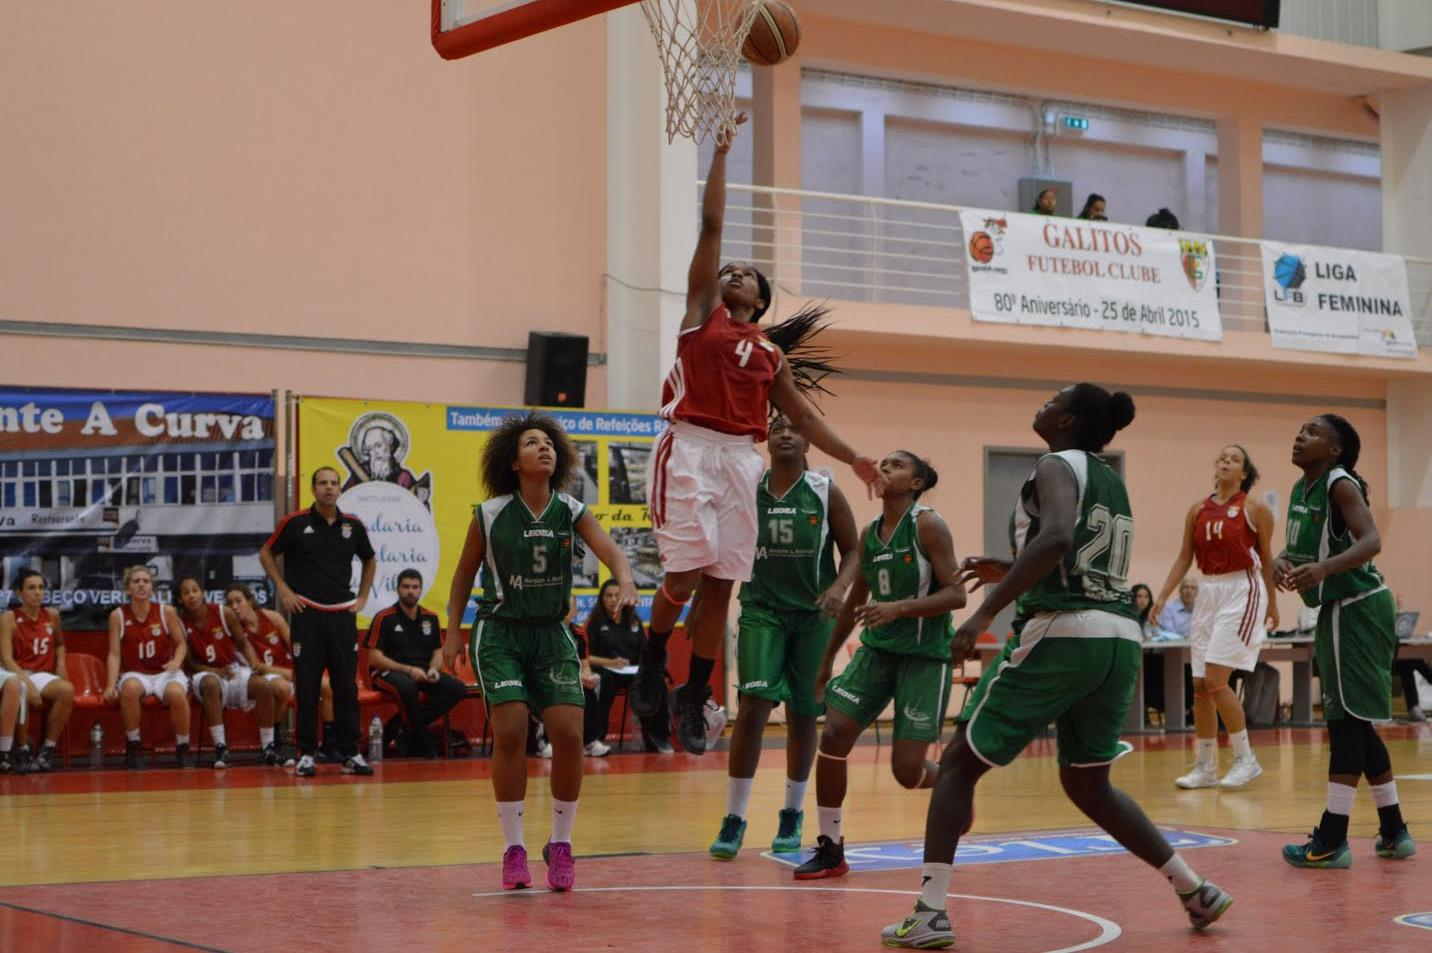 Former Wolfpack point guard Janecia Neely (above) drives to the basket for a lay in and attacks the defense during a game against Ad Vagos and Ovarense on Oct. 10 and 11. Neely is off a solid start to her career oversees, averaging 14 points and 5.2 assists per game through the first two games of the season.